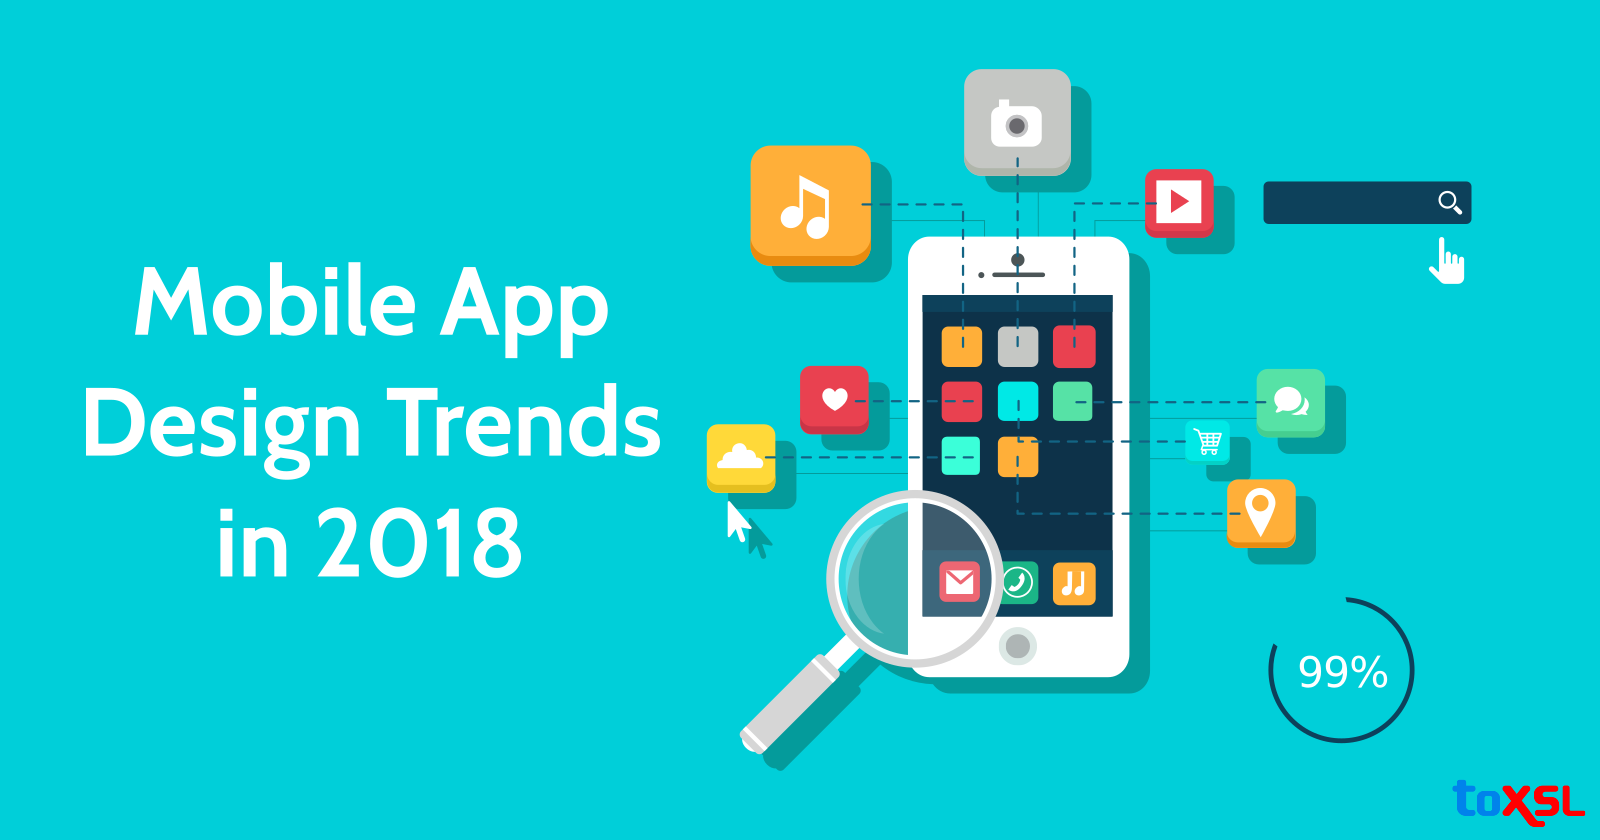 Mobile App Design Trends to Be Followed for User-Friendly Applications